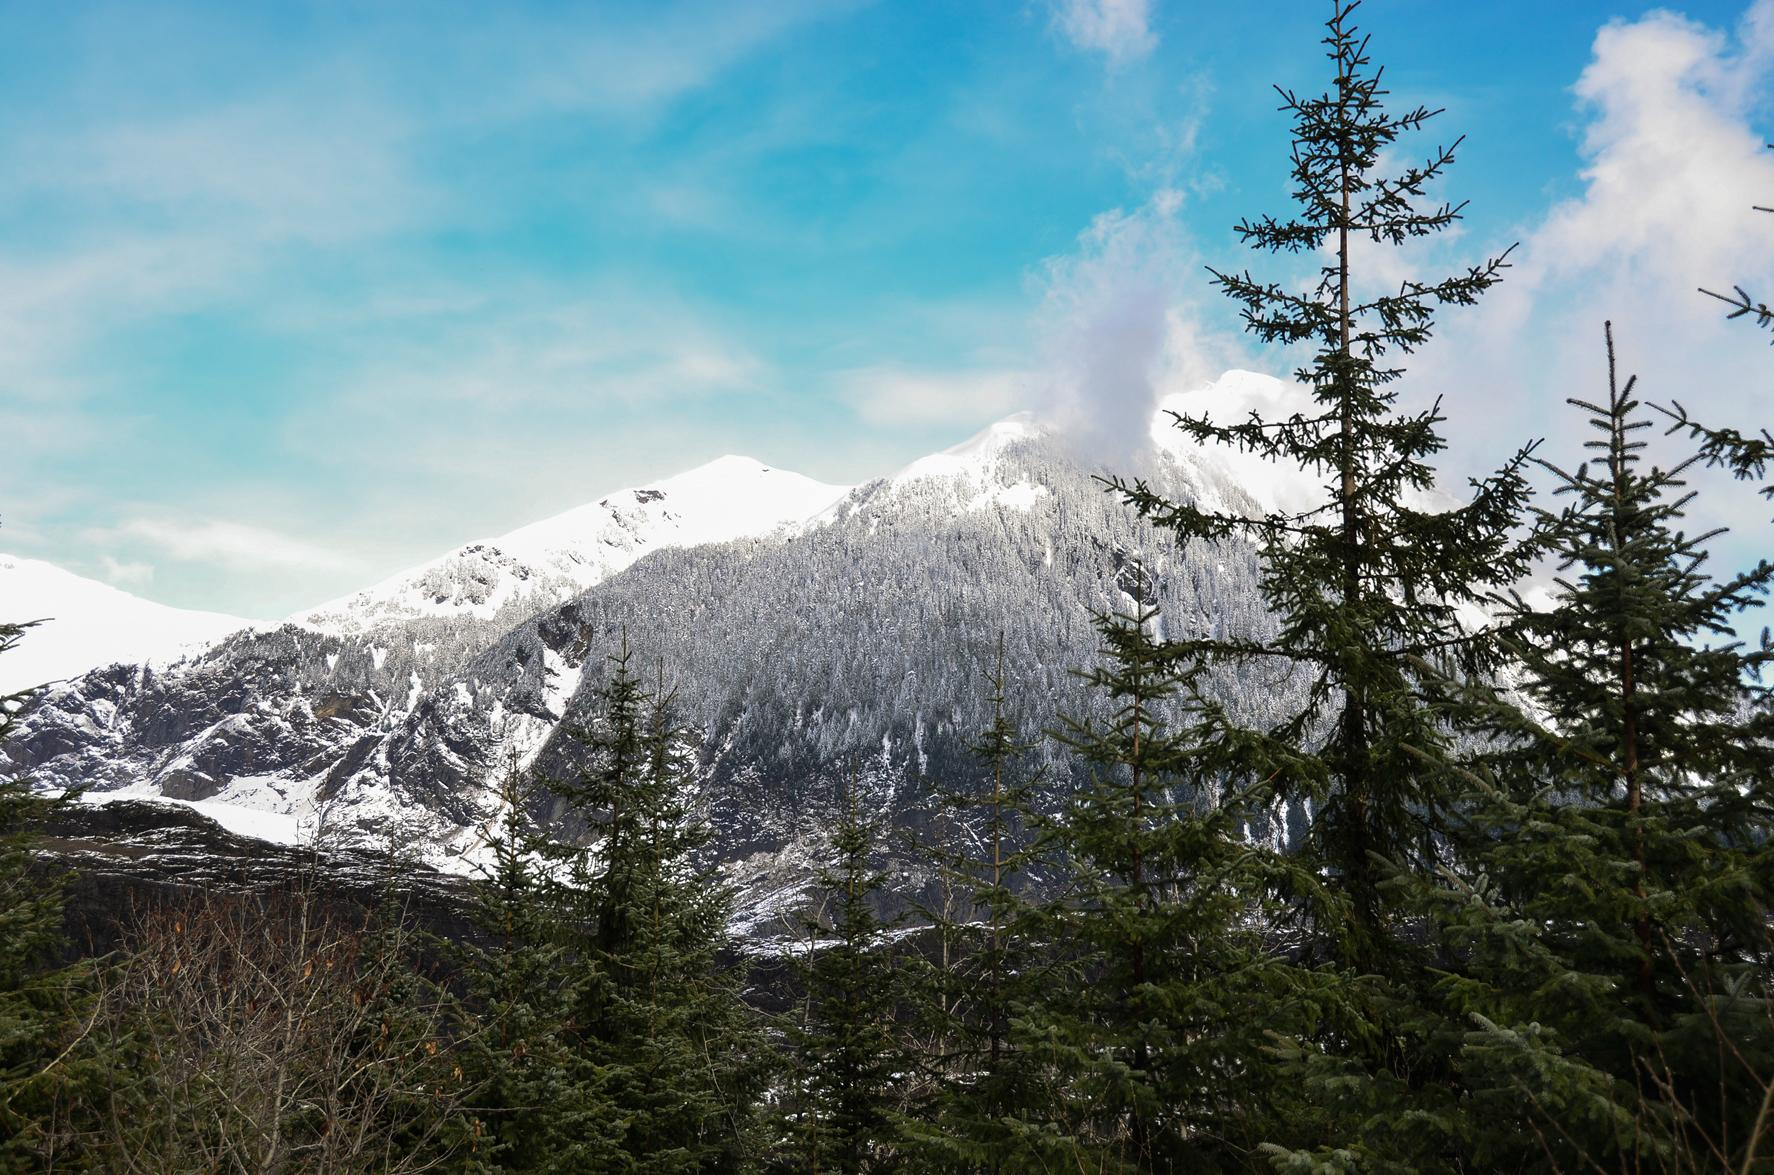 Winter in a Temperate Rainforest